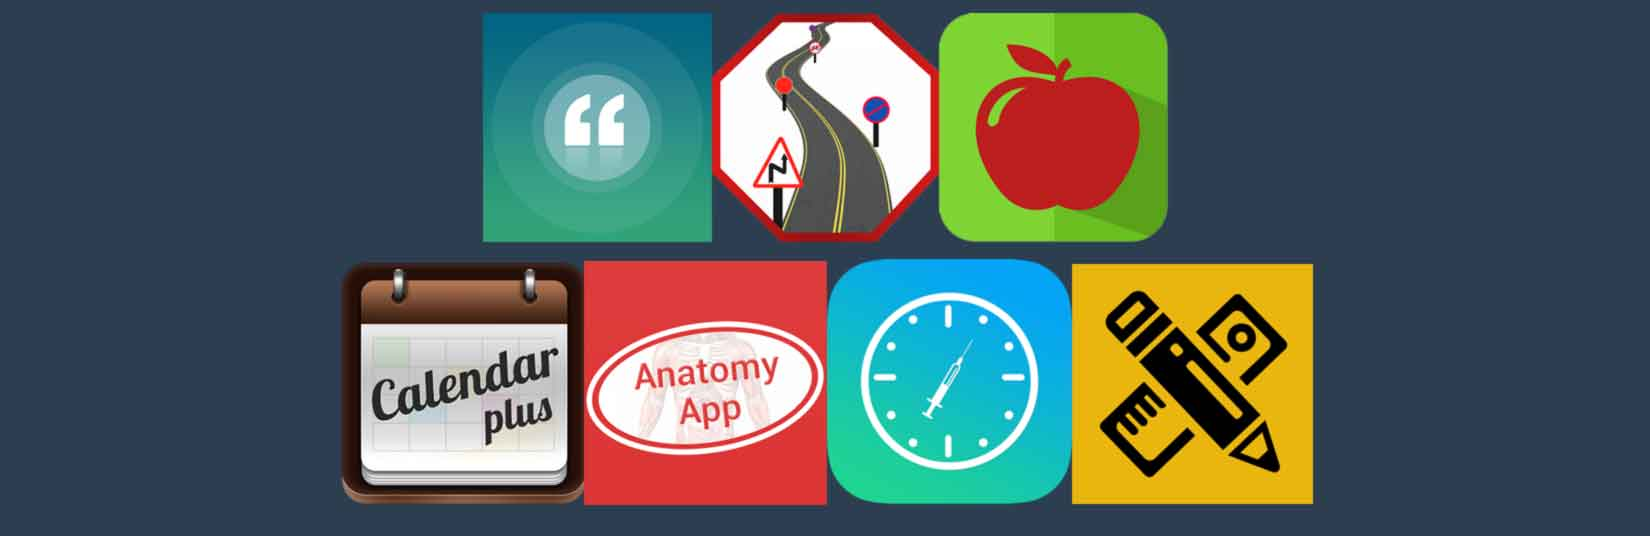 Launch-of-Iconic-Mobile-Apps